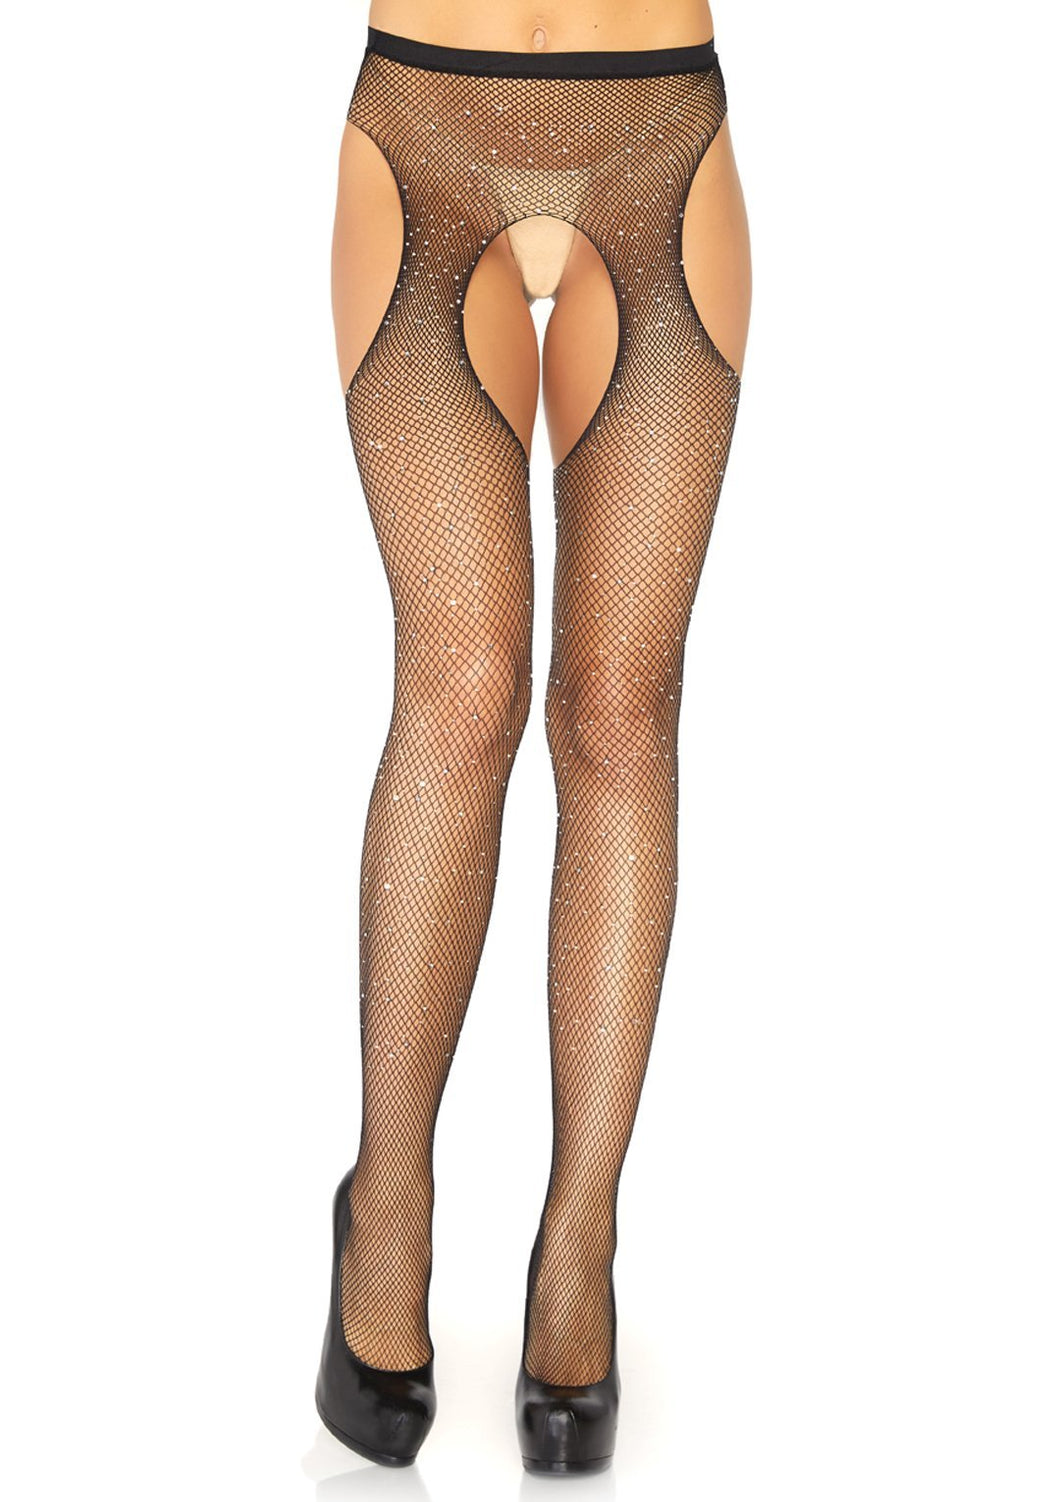 Black Trim, Stars and Cutout Panty Hose - [collection] - Honeybunnies.com